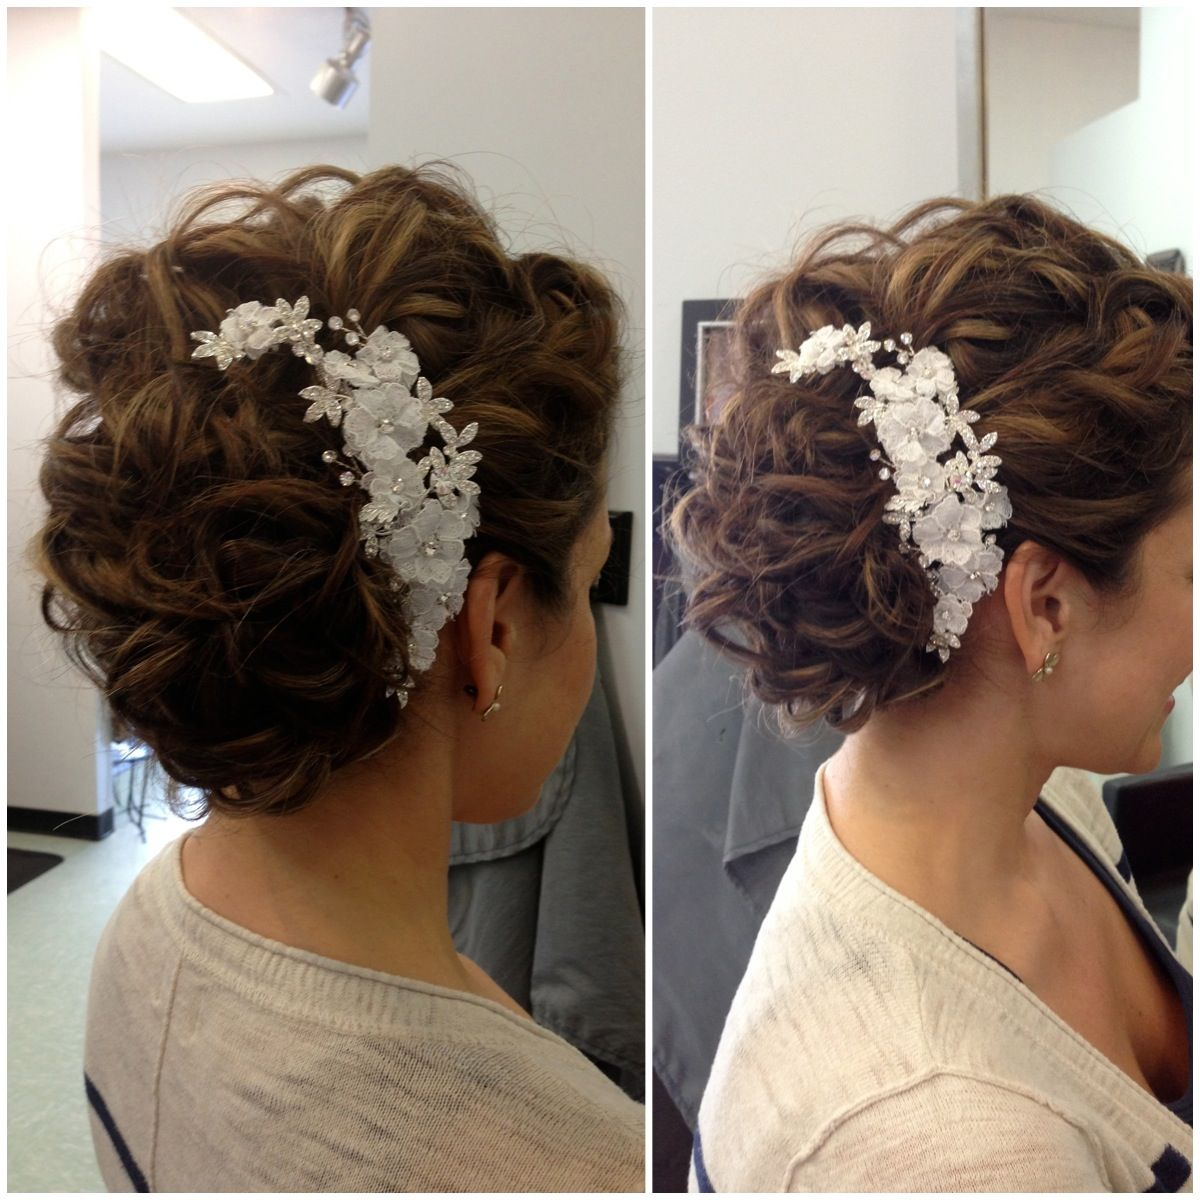 Updo Hairstyle For Wedding: Wedding Hair, Updo, Hair Accessories, Loose Curls